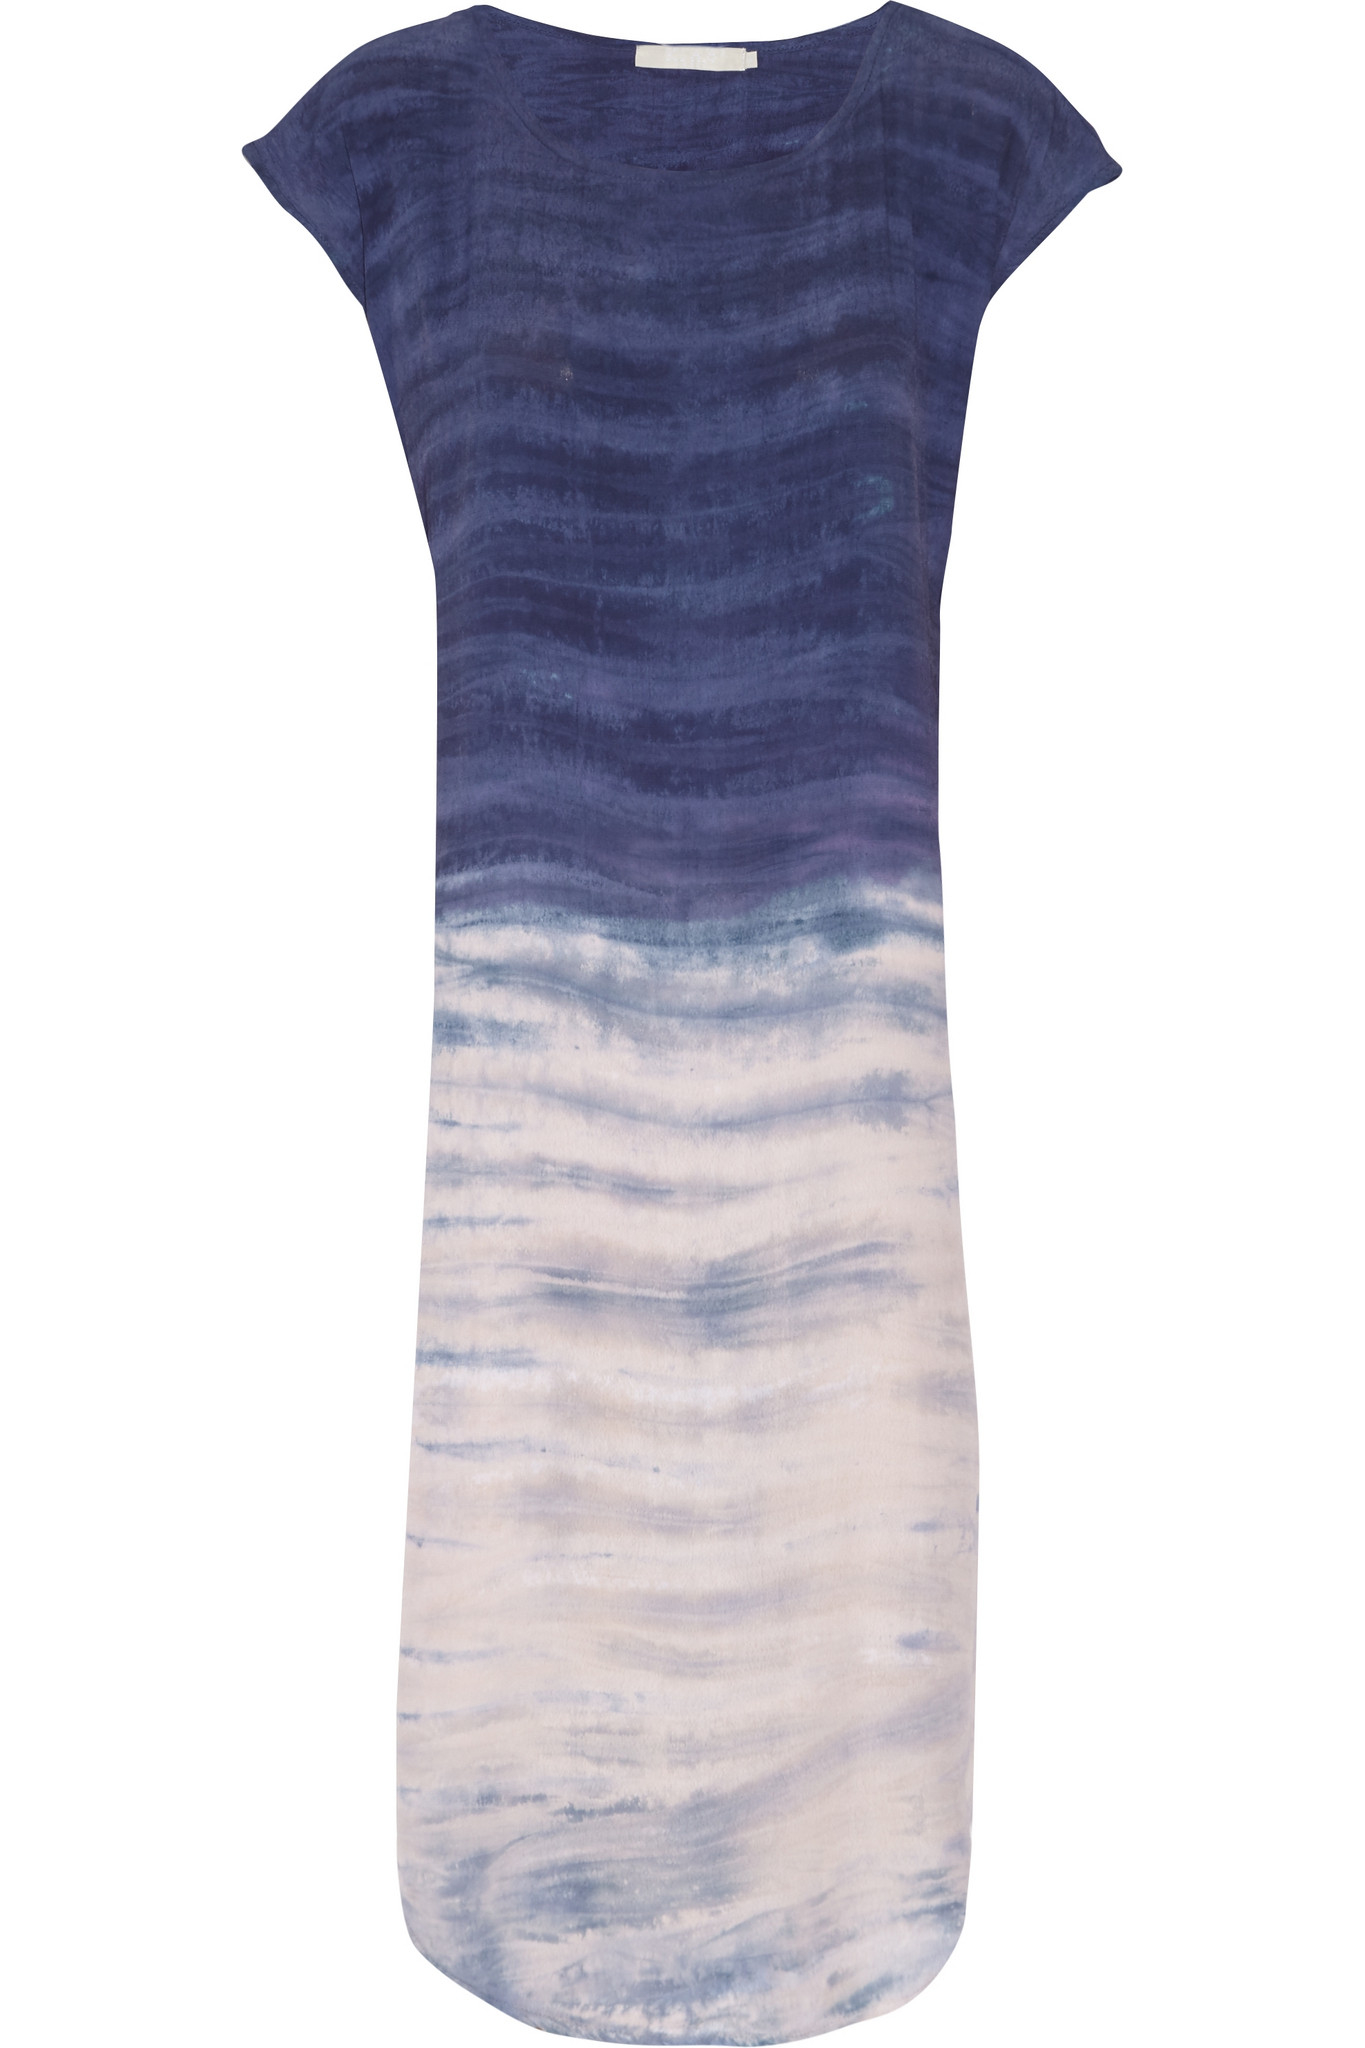 a292dae2d159 Lyst - Kain Meyer Printed Crepe Dress in Blue